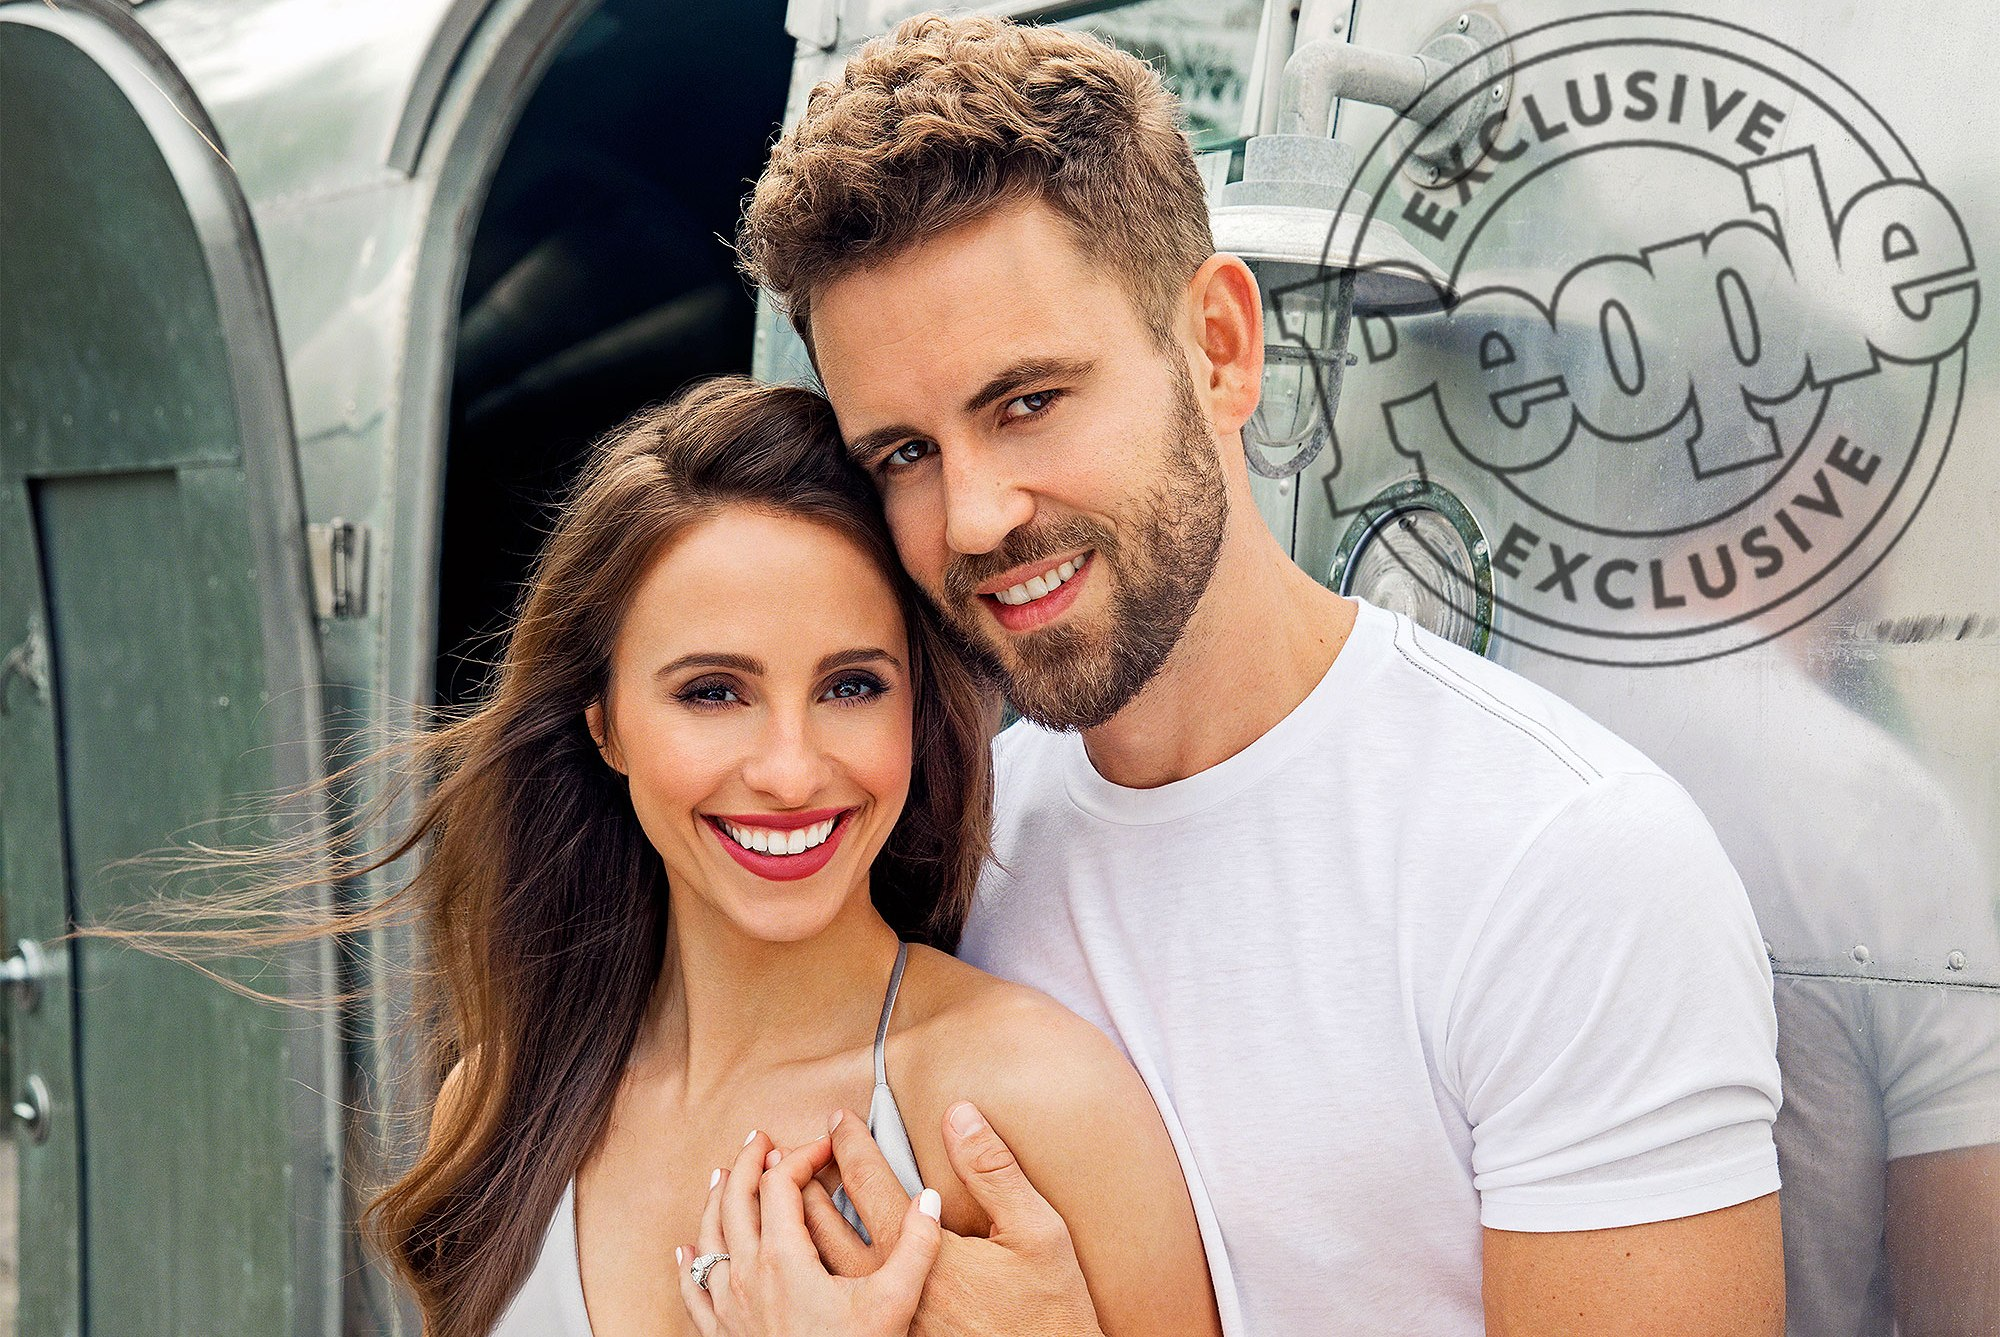 10-things-you-didnt-know-about=the-bachelor-winner-vanessa-grimaldi1